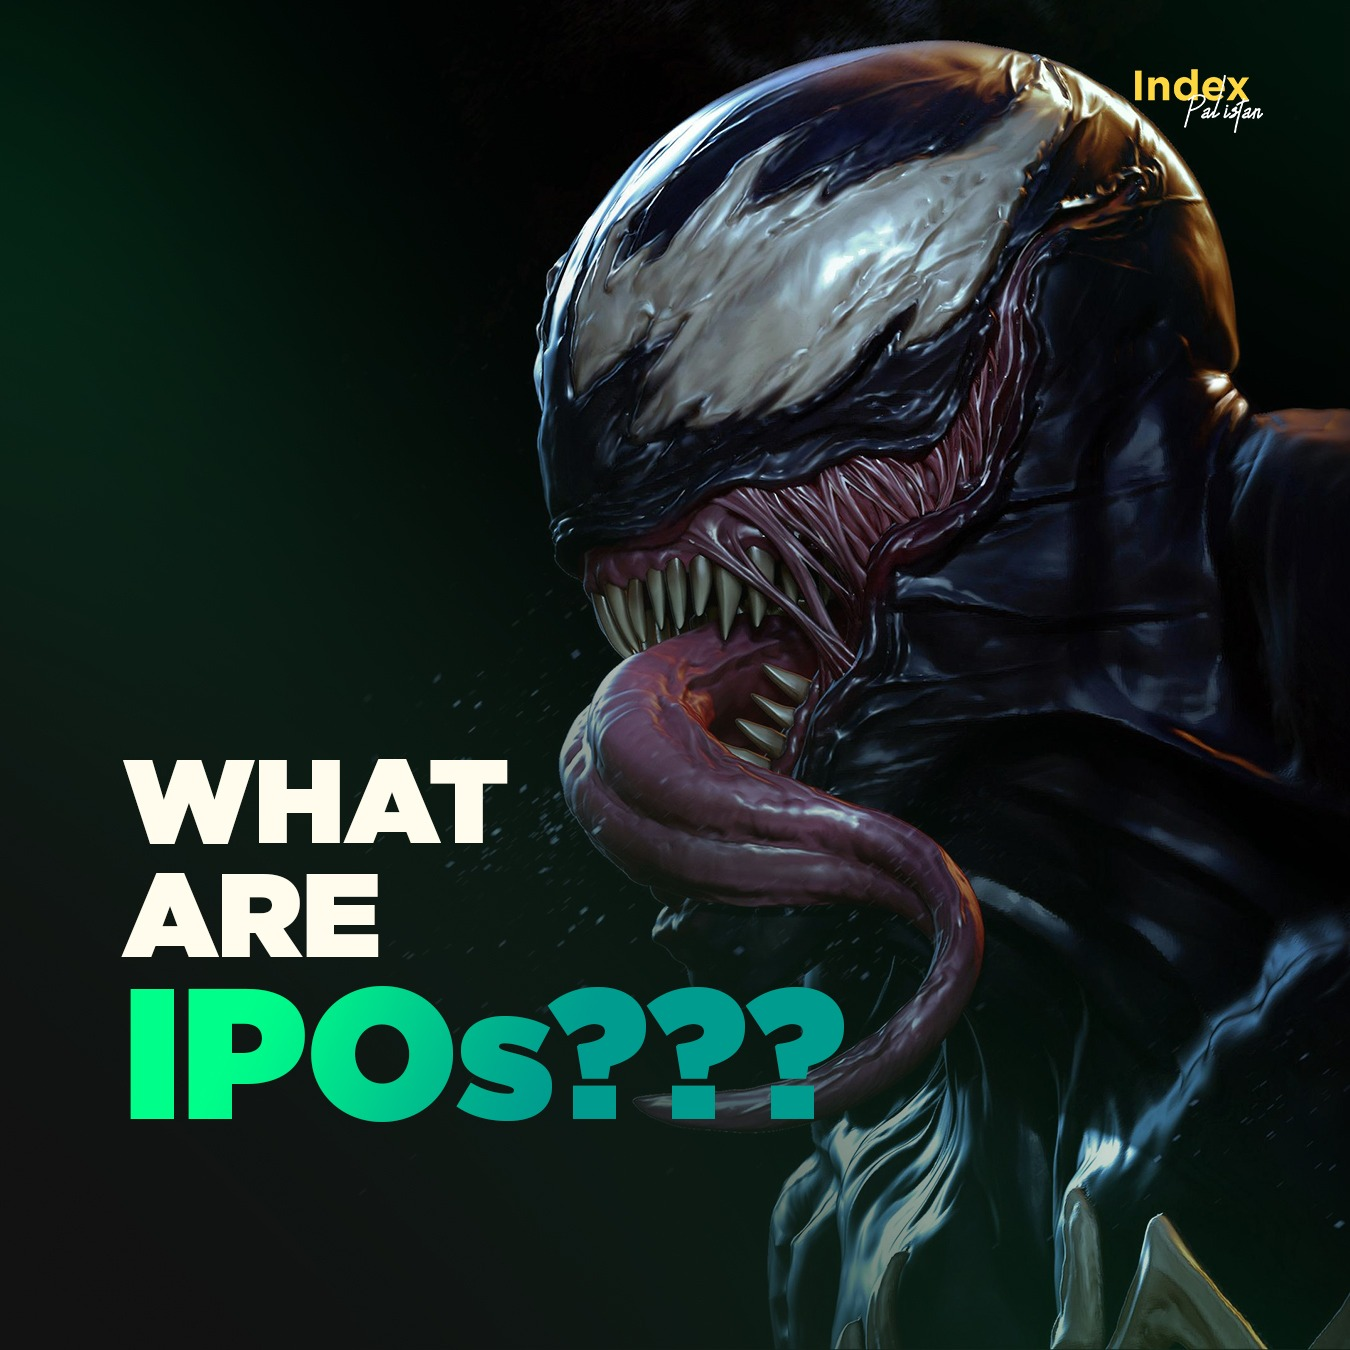 what are ipo